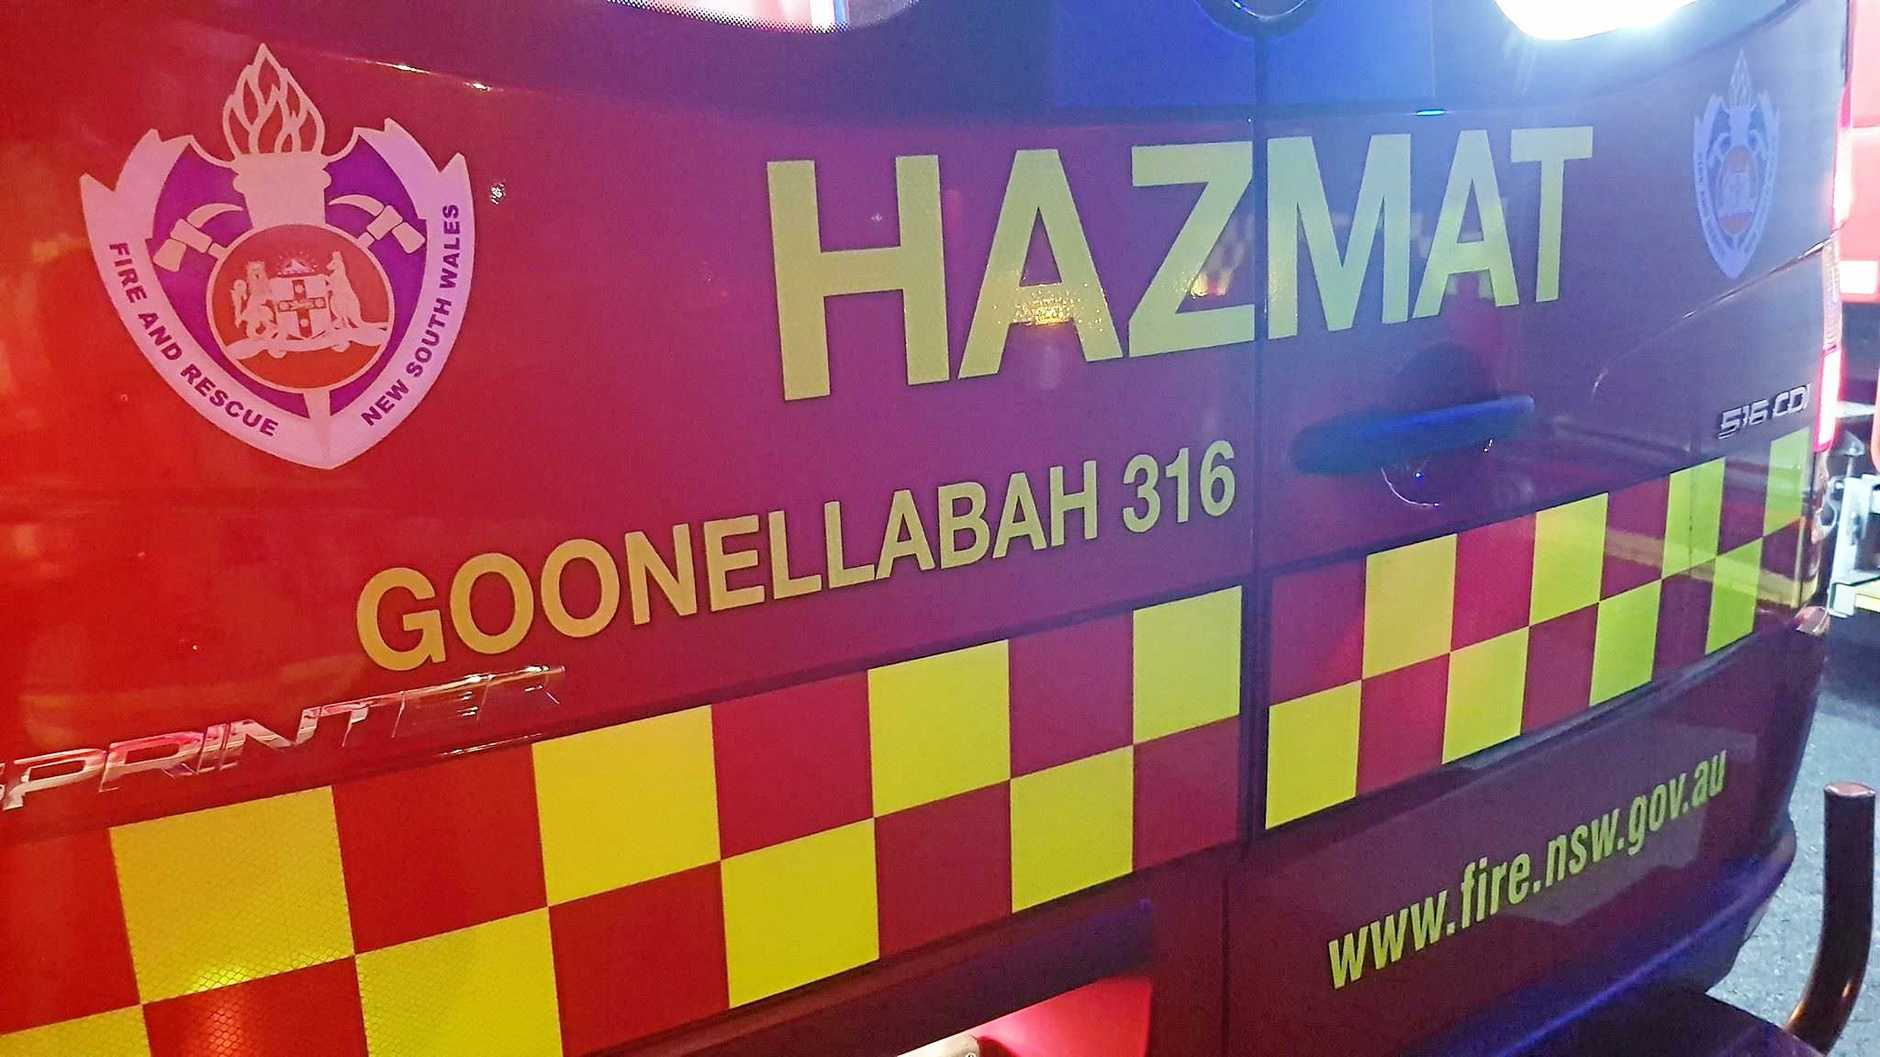 FUEL TANK BURST: Fire & Rescue Goonellabah's Hazmat unit is with other emergency services at the scene of of a B-double tank rupture on the Pacific Hwy on Thursday morning.